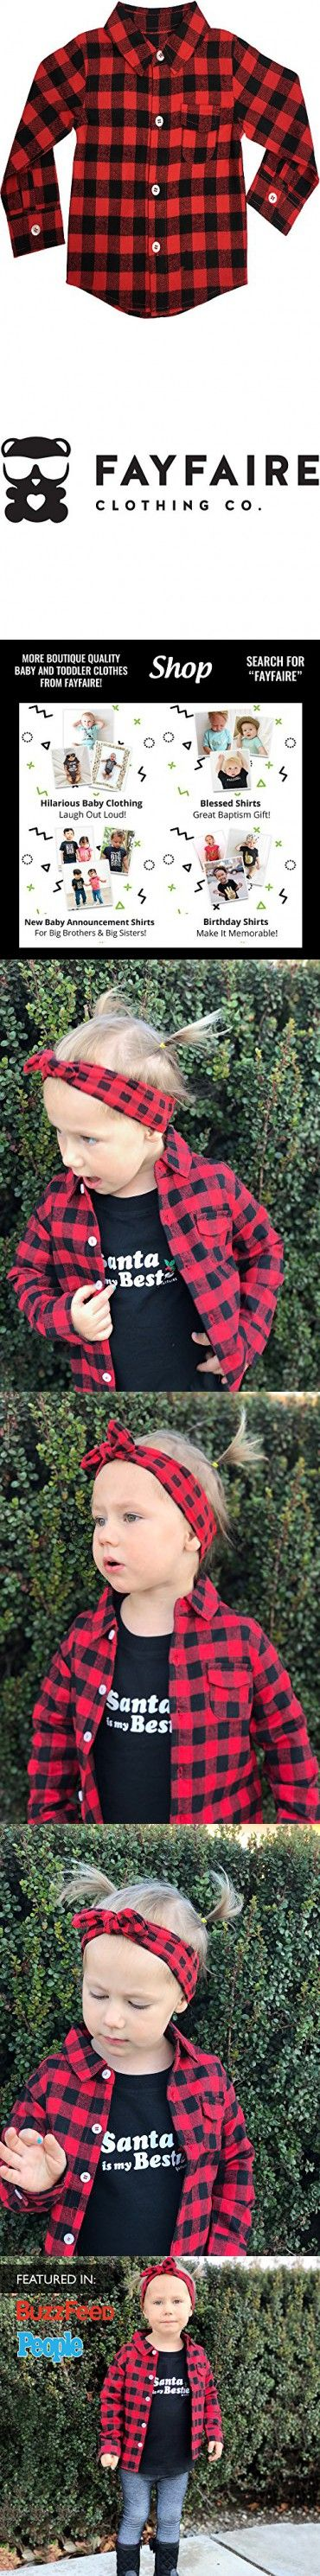 Baby Flannel Shirt by Fayfaire Boutique | Adorable Red Buffalo Plaid 12M